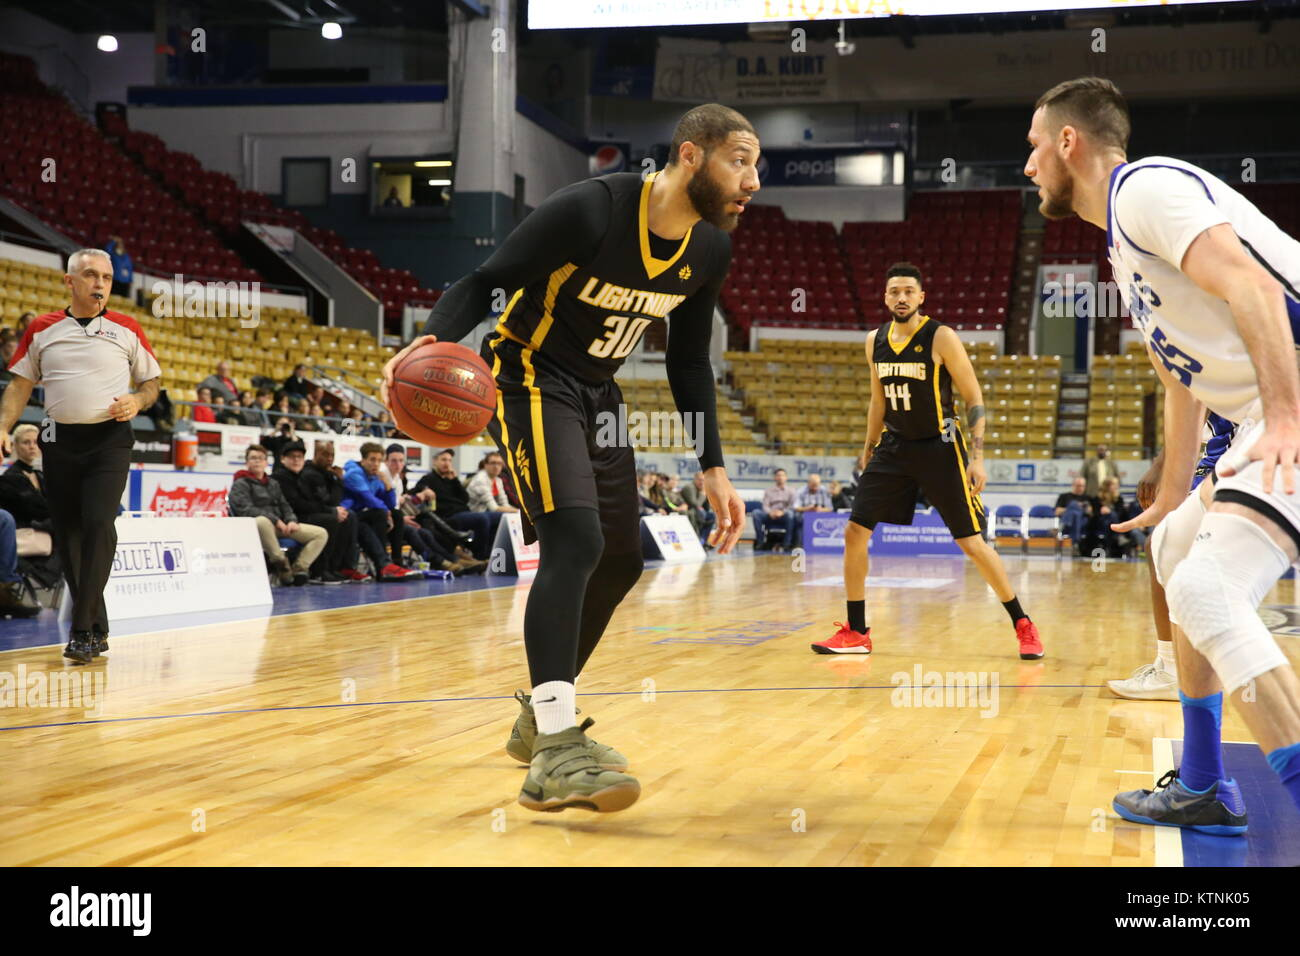 London, Canada. 26th Dec, 2017. Kitchener, Ontario, Canada, Dec 26th 2017 London lightning VS KW Titans at the Aud - Stock Image